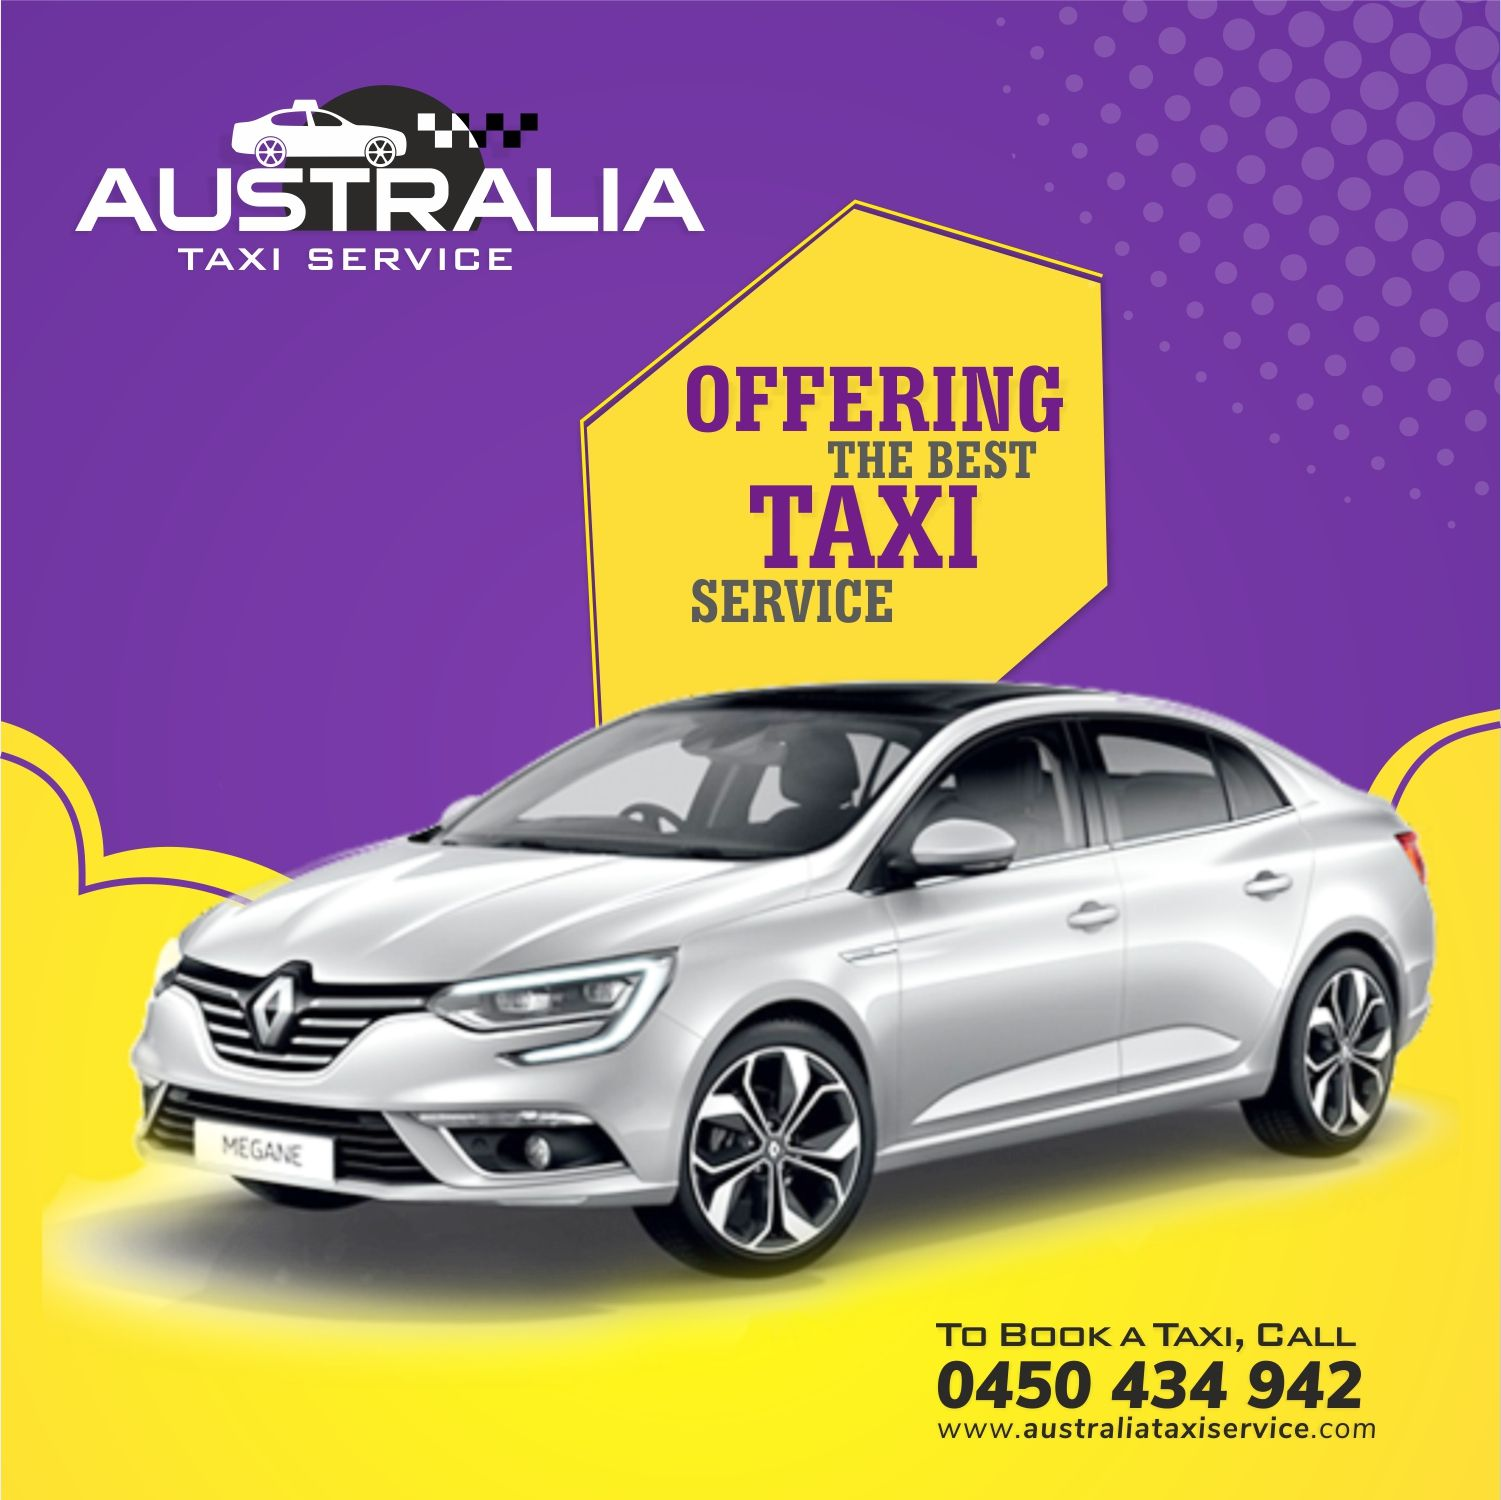 Get The Best Ride Experience With Australiataxiservice To Book A